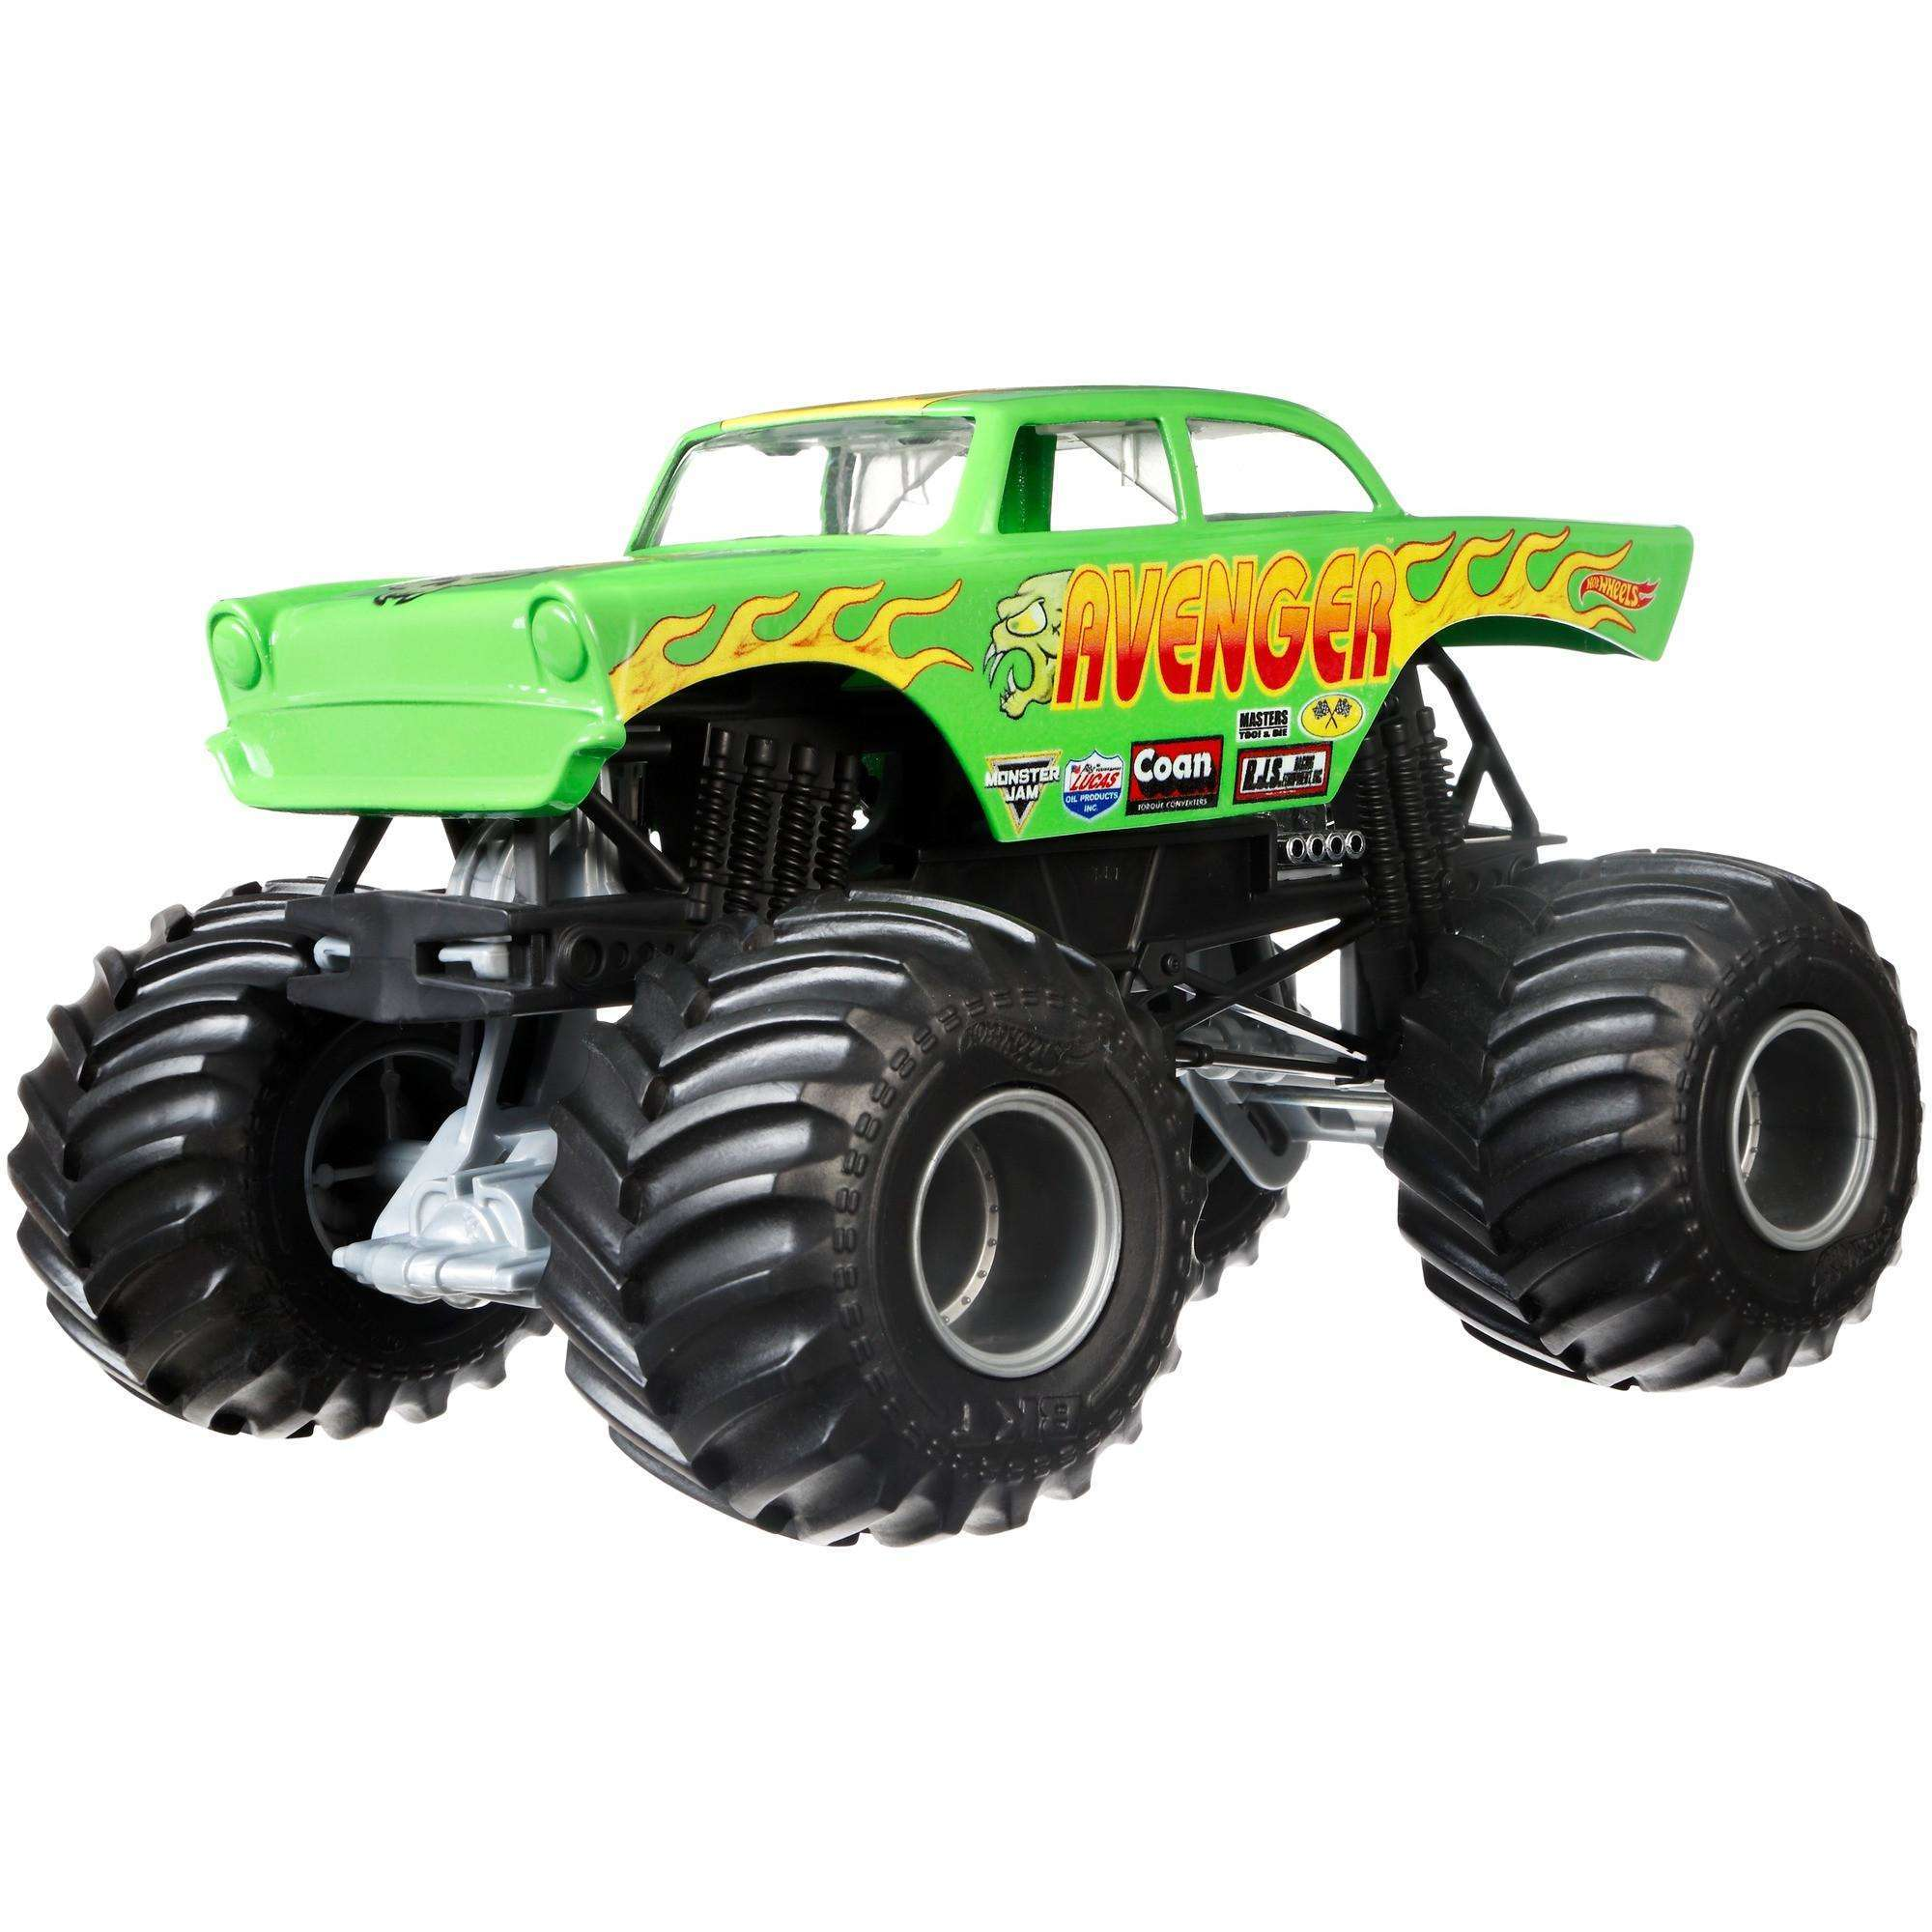 Hot Wheels Monster Jam Avenger Vehicle